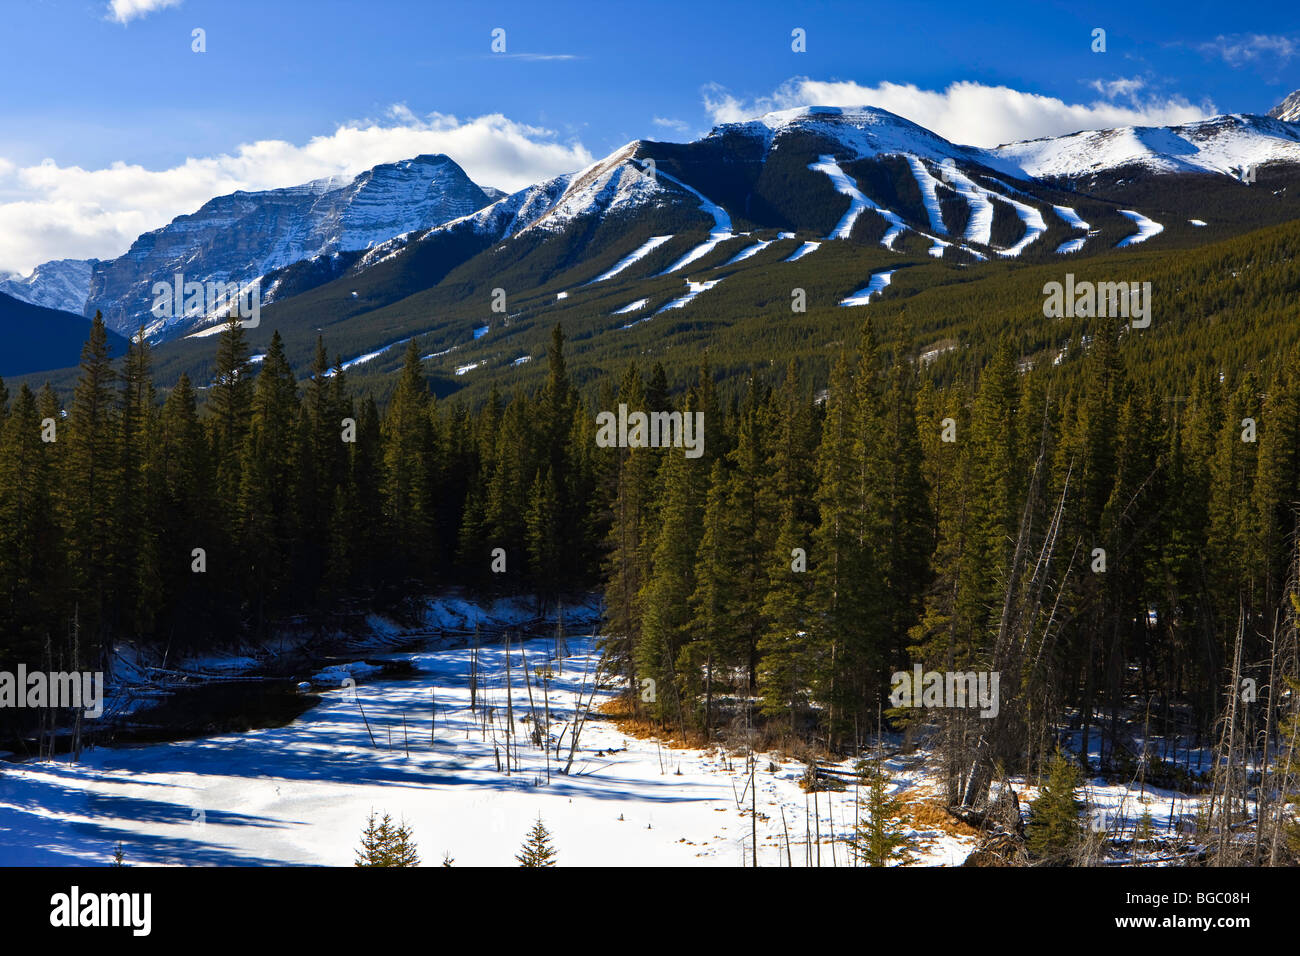 Nakiska Ski Resort on the slopes of Mount Allan (2789 metres/9150 feet) site of the Alpine Events of the 1988 Olympic - Stock Image